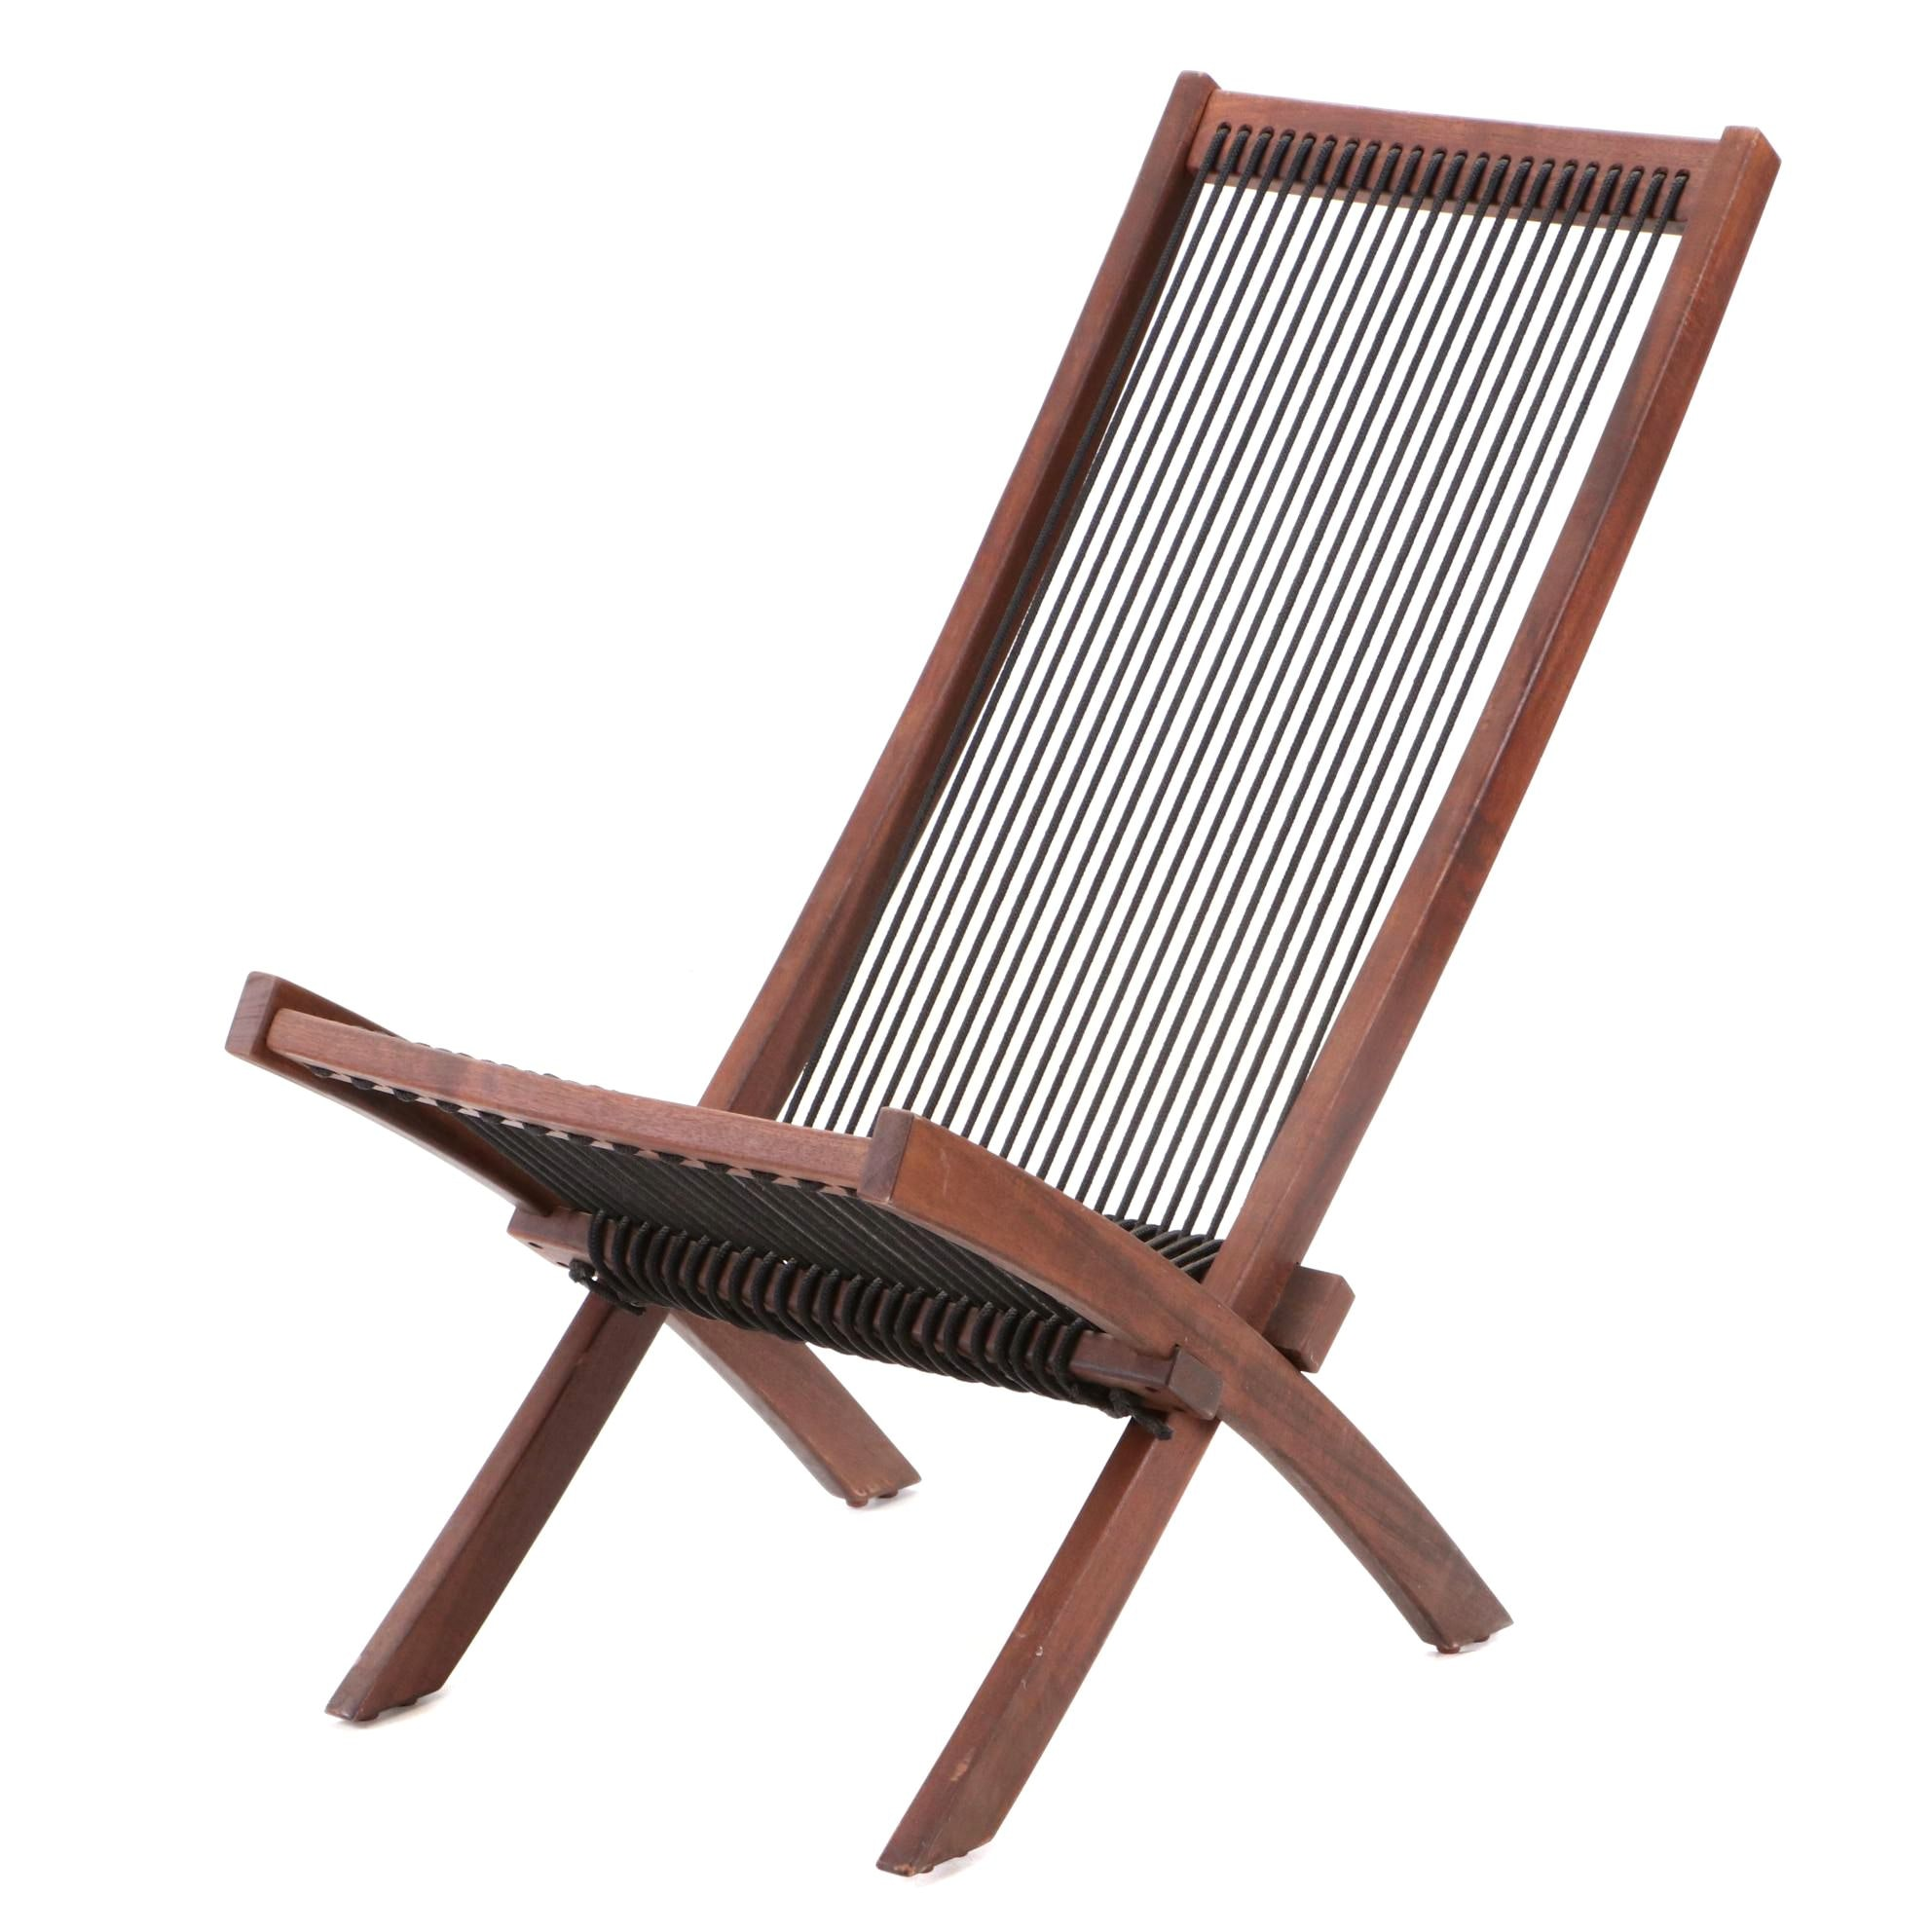 Folding Patio Chair in Teak